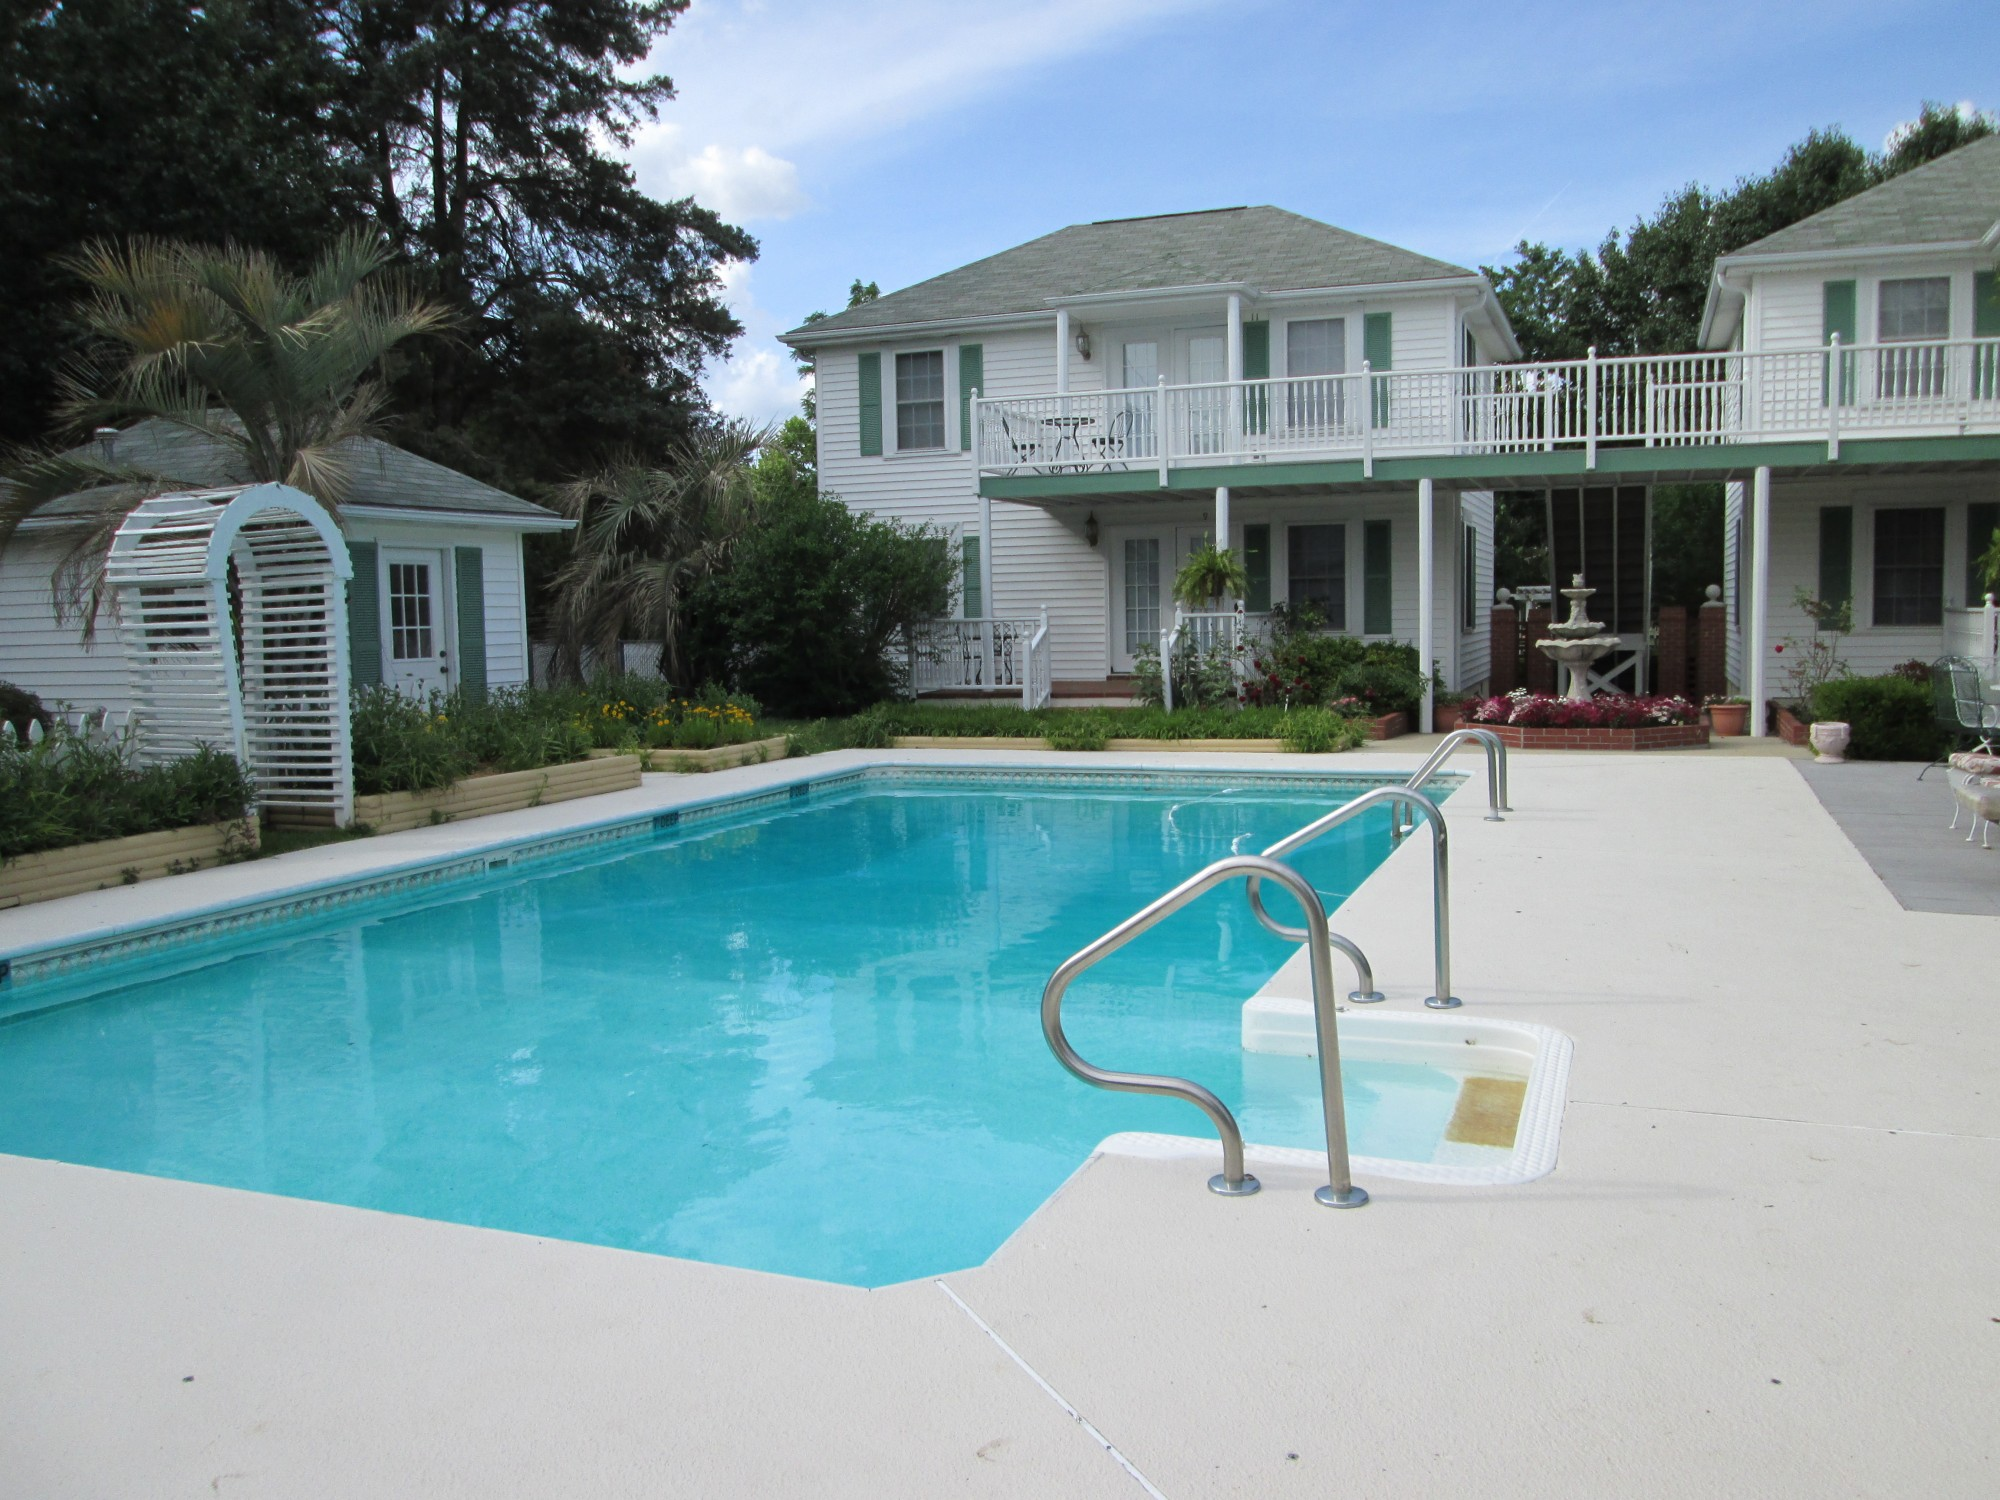 http://anniesinnbnb.com/wp-content/uploads/pool-area-and-cottages-9-10-11-12-e14018257624391.jpg